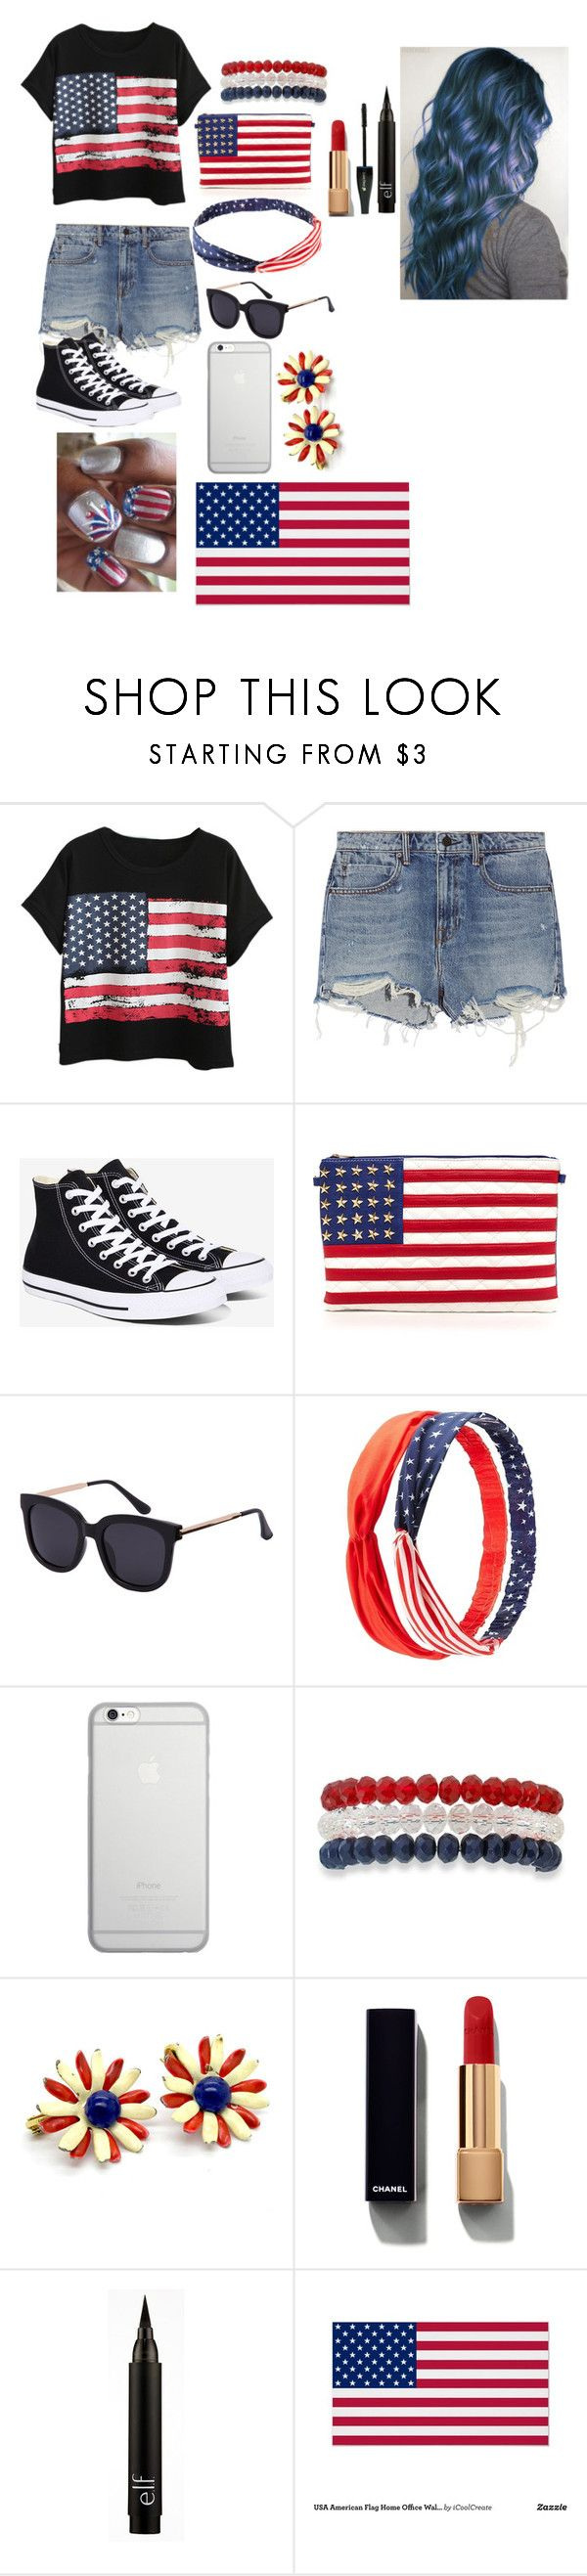 """Happy Fourth of July!!"" by gglloyd ❤ liked on Polyvore featuring Chicnova Fashion, Alexander Wang, Converse, Charlotte Russe, Native Union, Kim Rogers, Chanel, Lancôme and WALL"